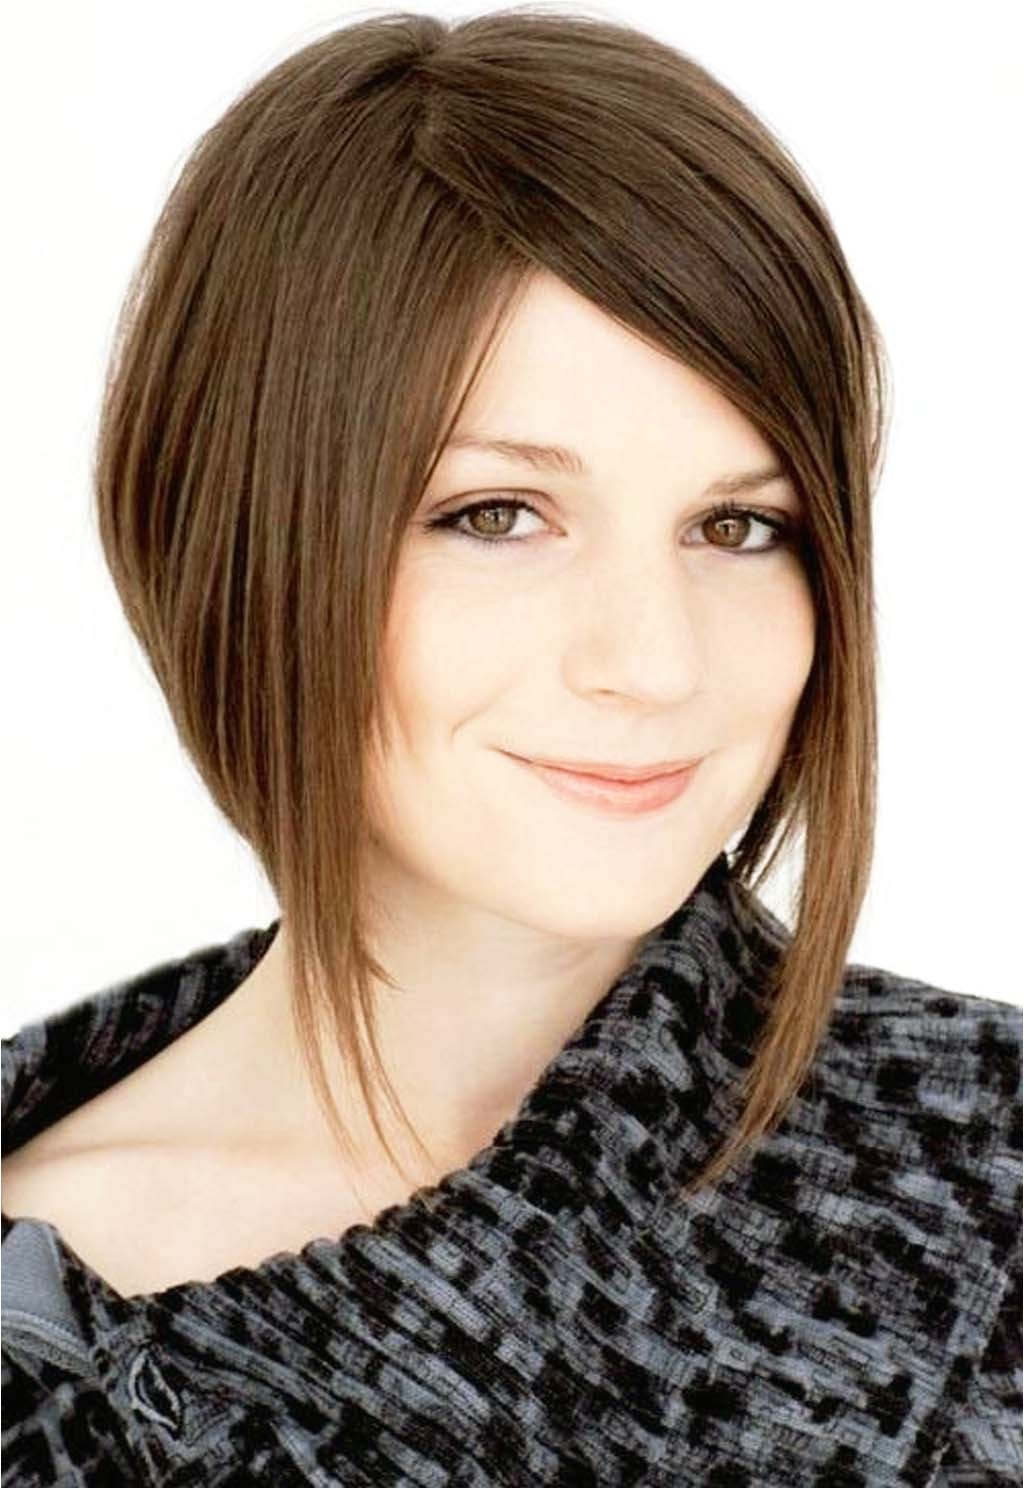 17 aline bob hairstyles best 2016 and 2017